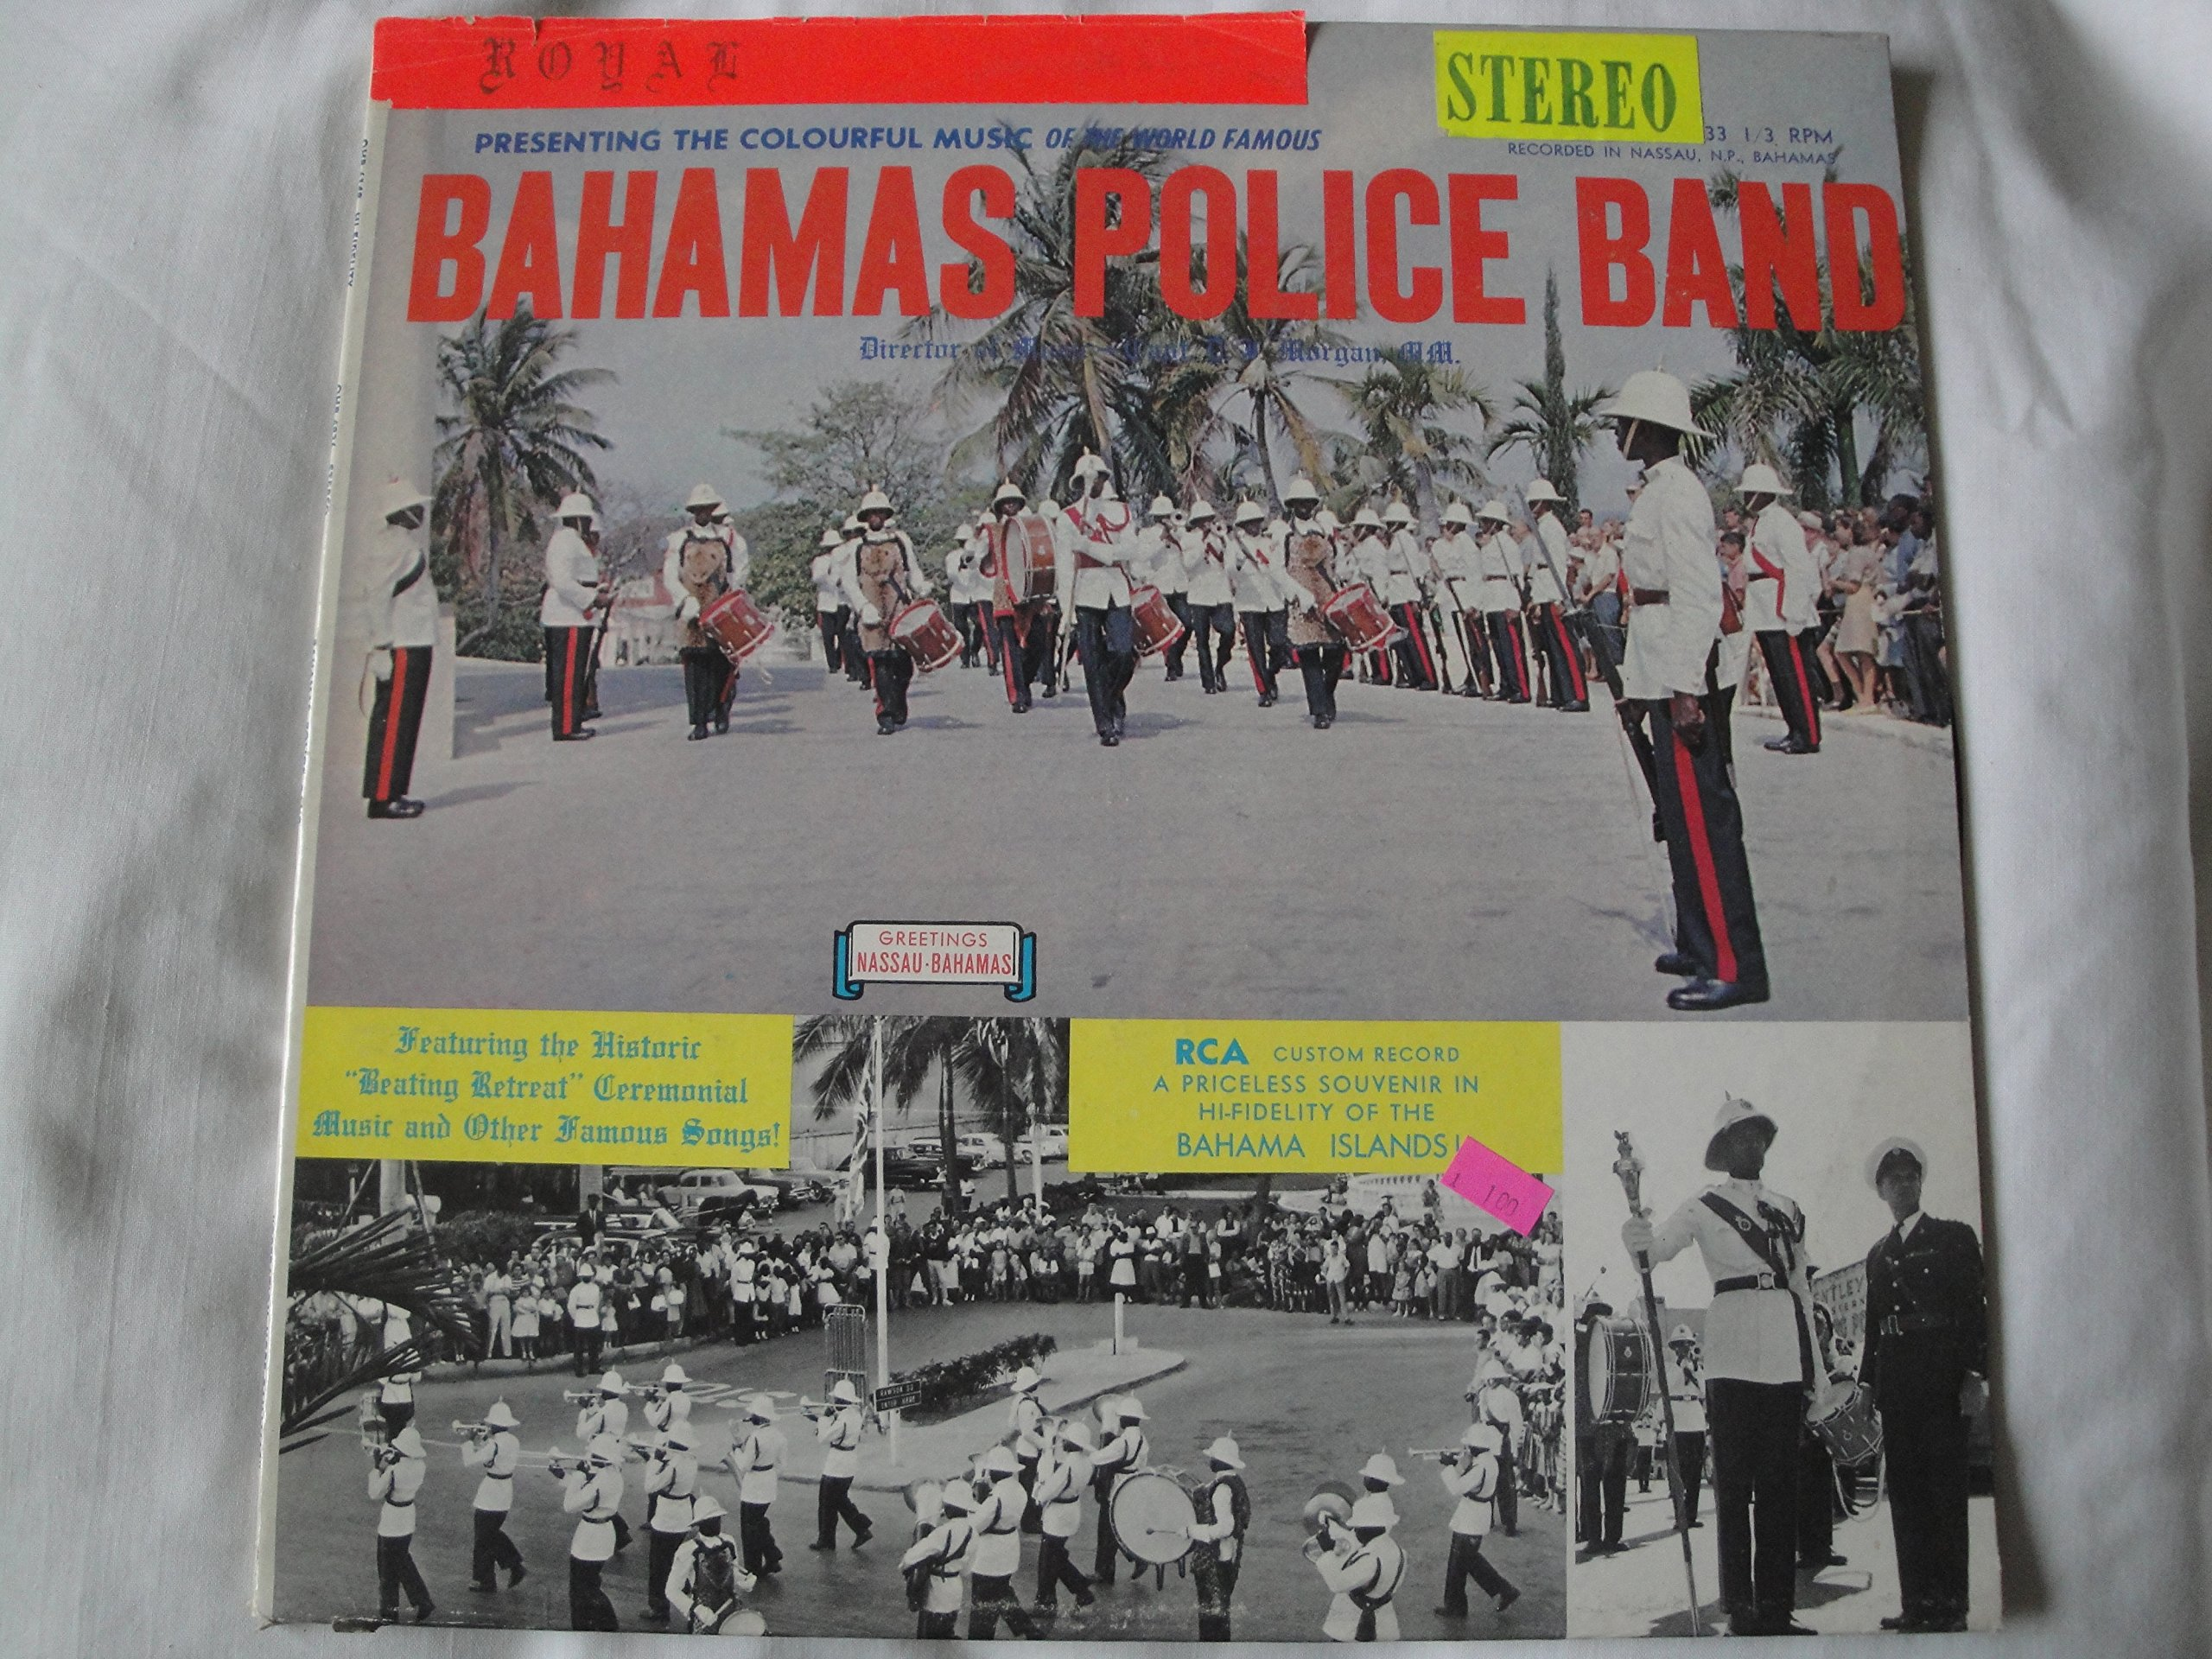 Presenting the Colourful Music of the World Famous BAHAMAS POLICE BAND by Penny Farthing, Ltd.